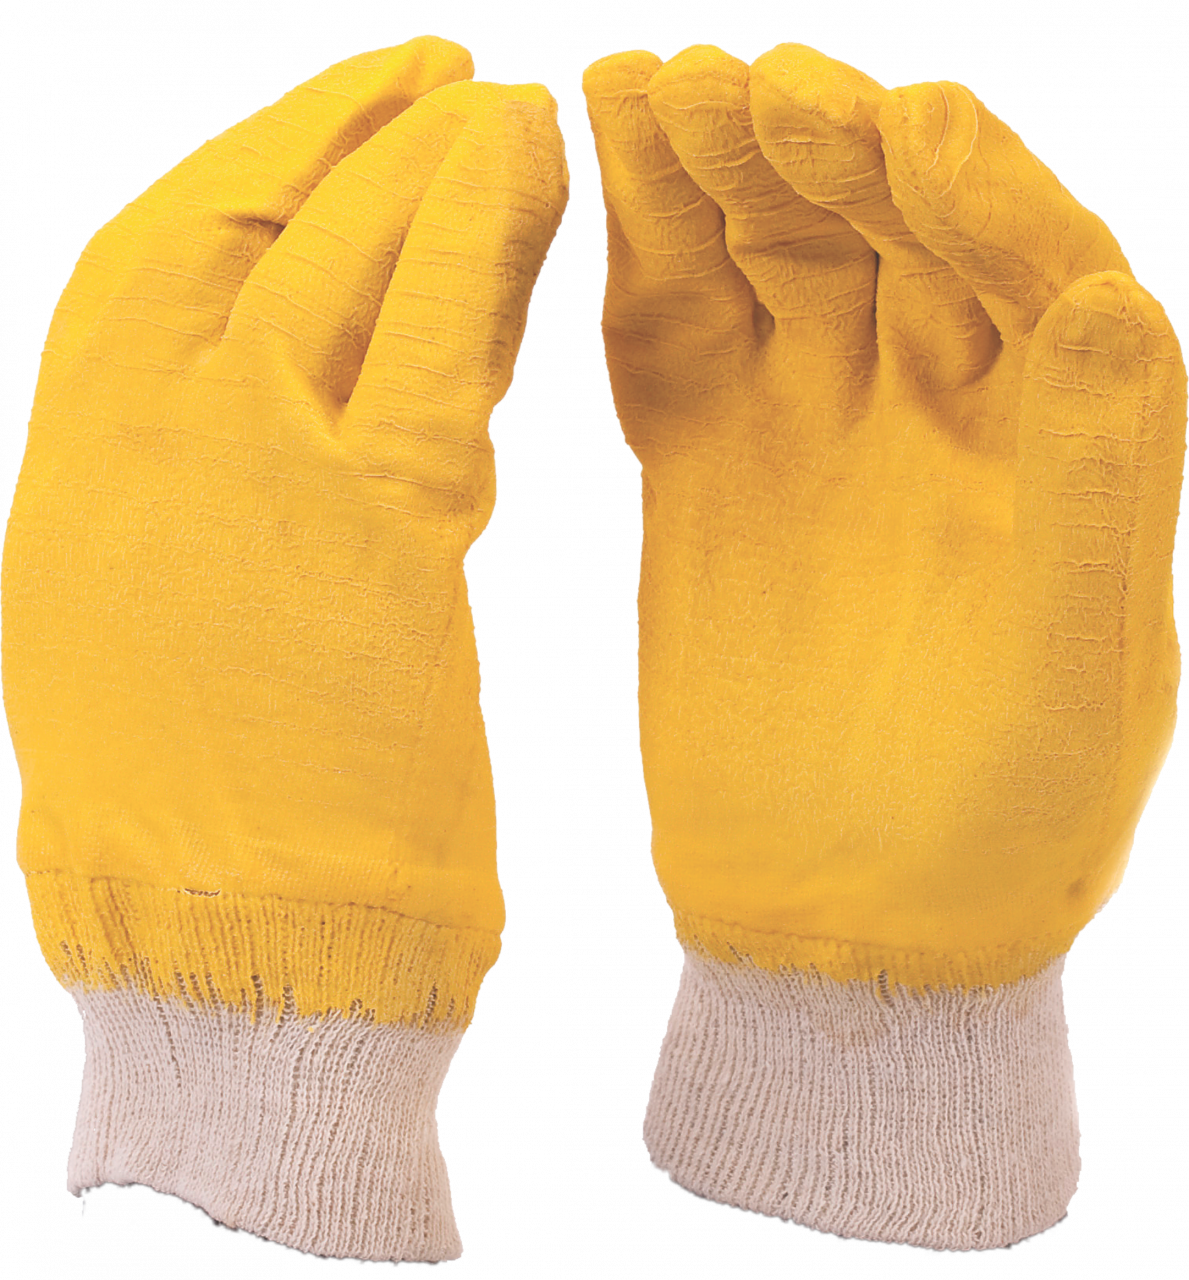 COMAREX FULLY DIPPED GLOVE